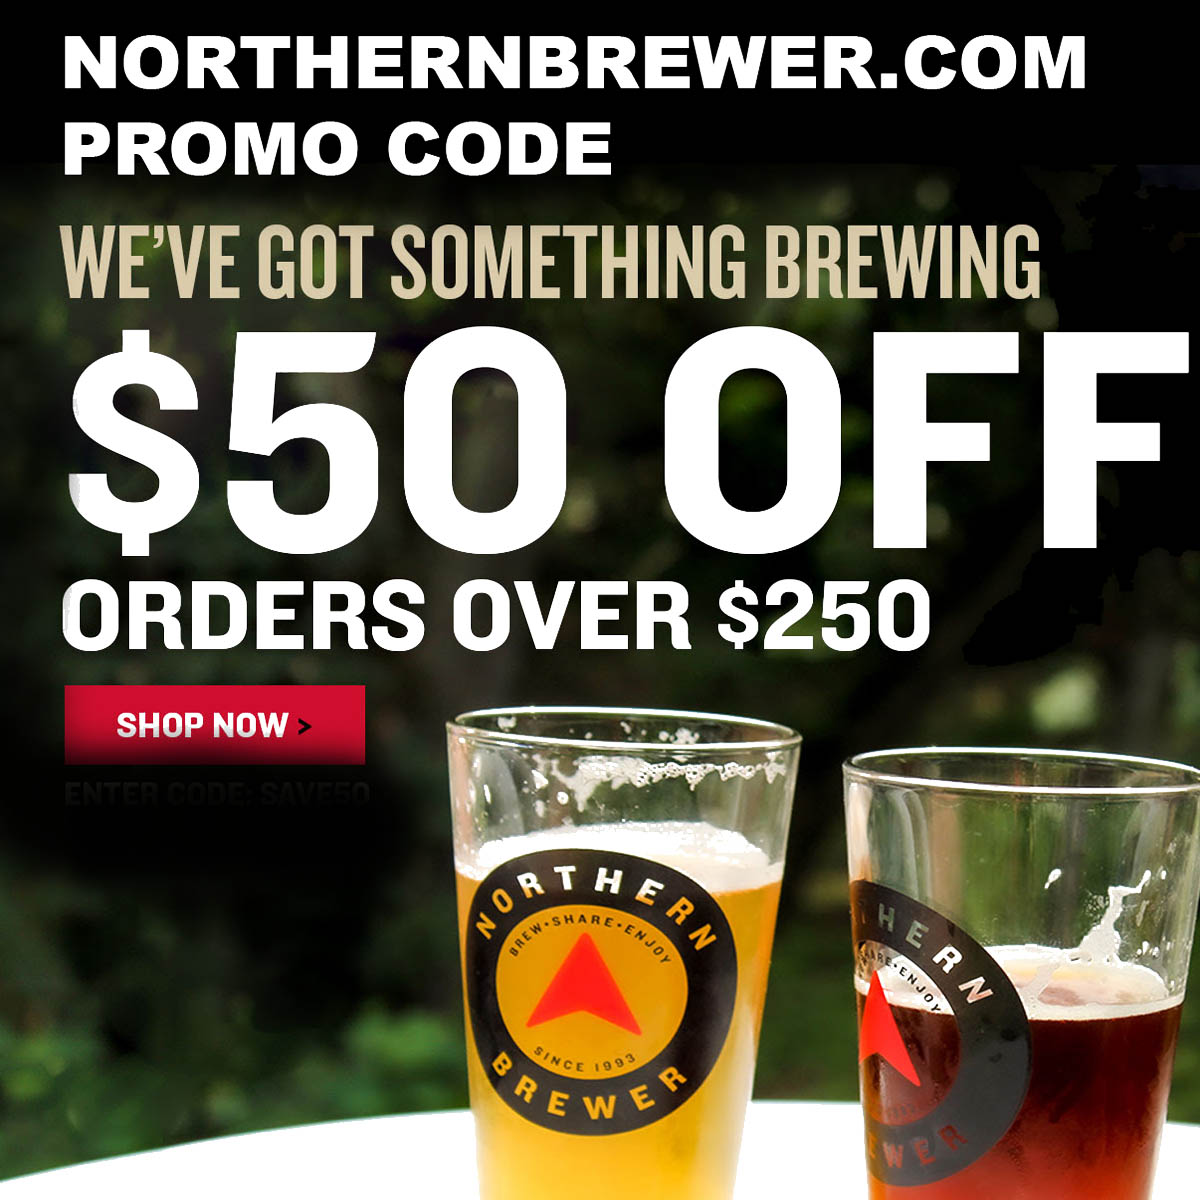 Home Wine Making Coupon Codes for Save $50 Off Orders of $250 Or More With This NorthernBrewer.com Promo Code Coupon Code